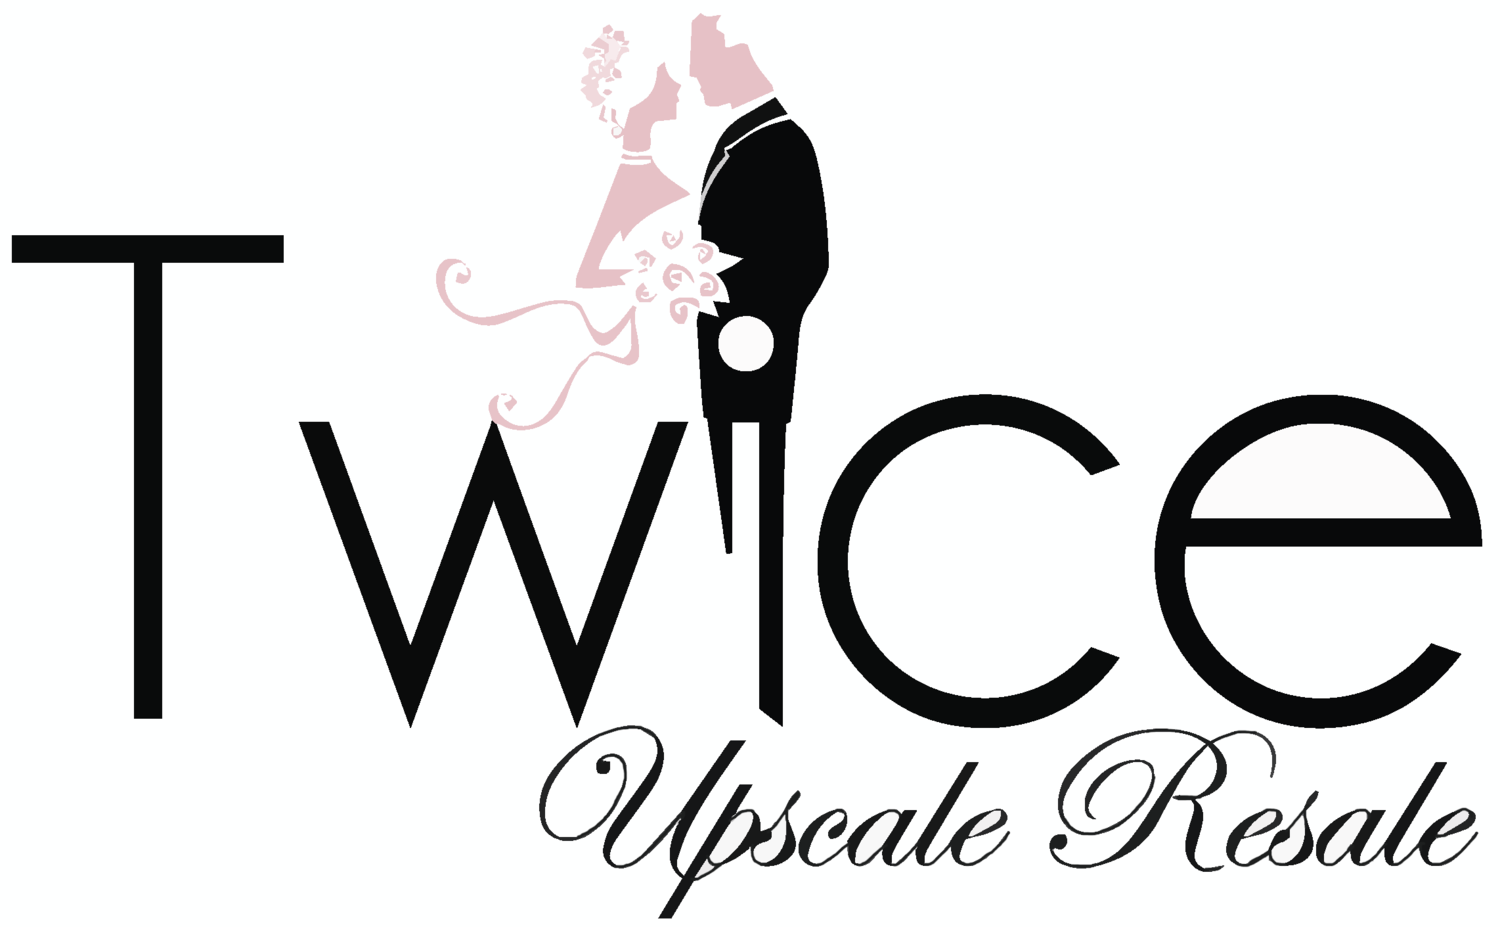 Twice Upscale Resale